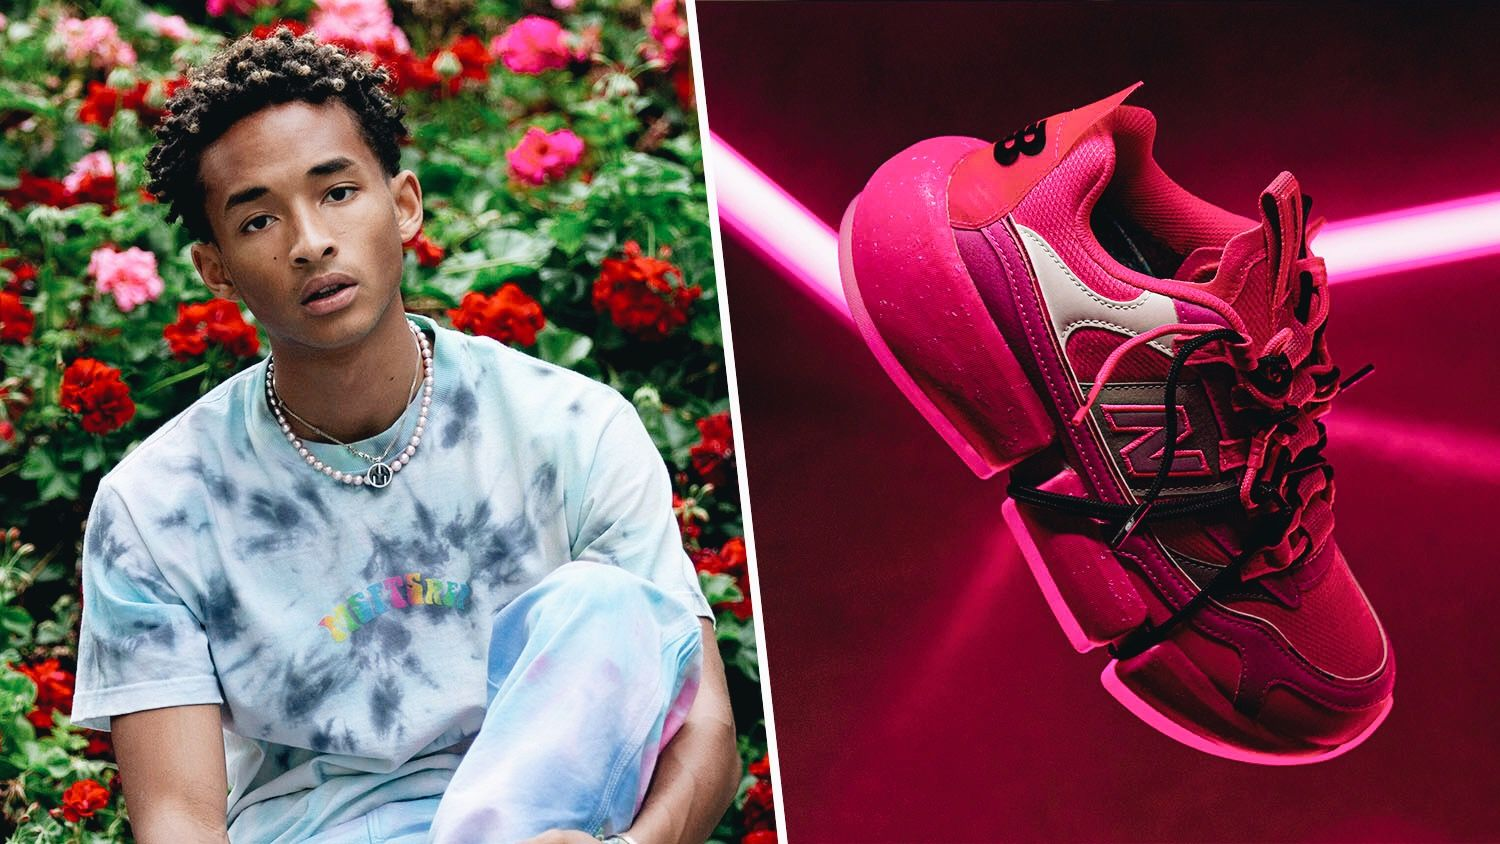 Jaden Smith and New Balance Team Up to Launch Pink Vegan Sneakers